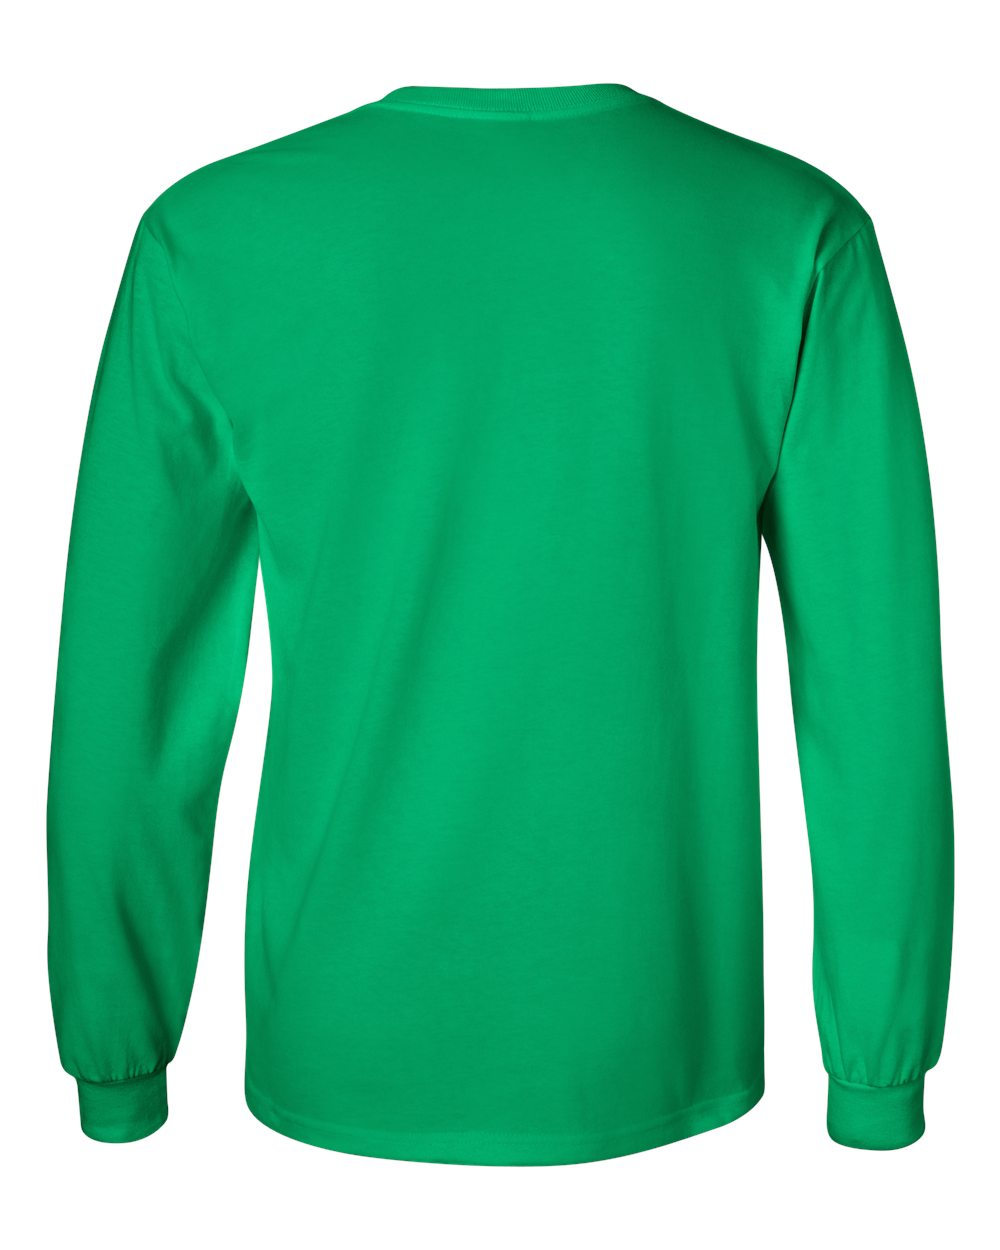 Gildan-Men-039-s-Ultra-Cotton-6-oz-Long-Sleeve-T-Shirt-G240-S-5XL thumbnail 44